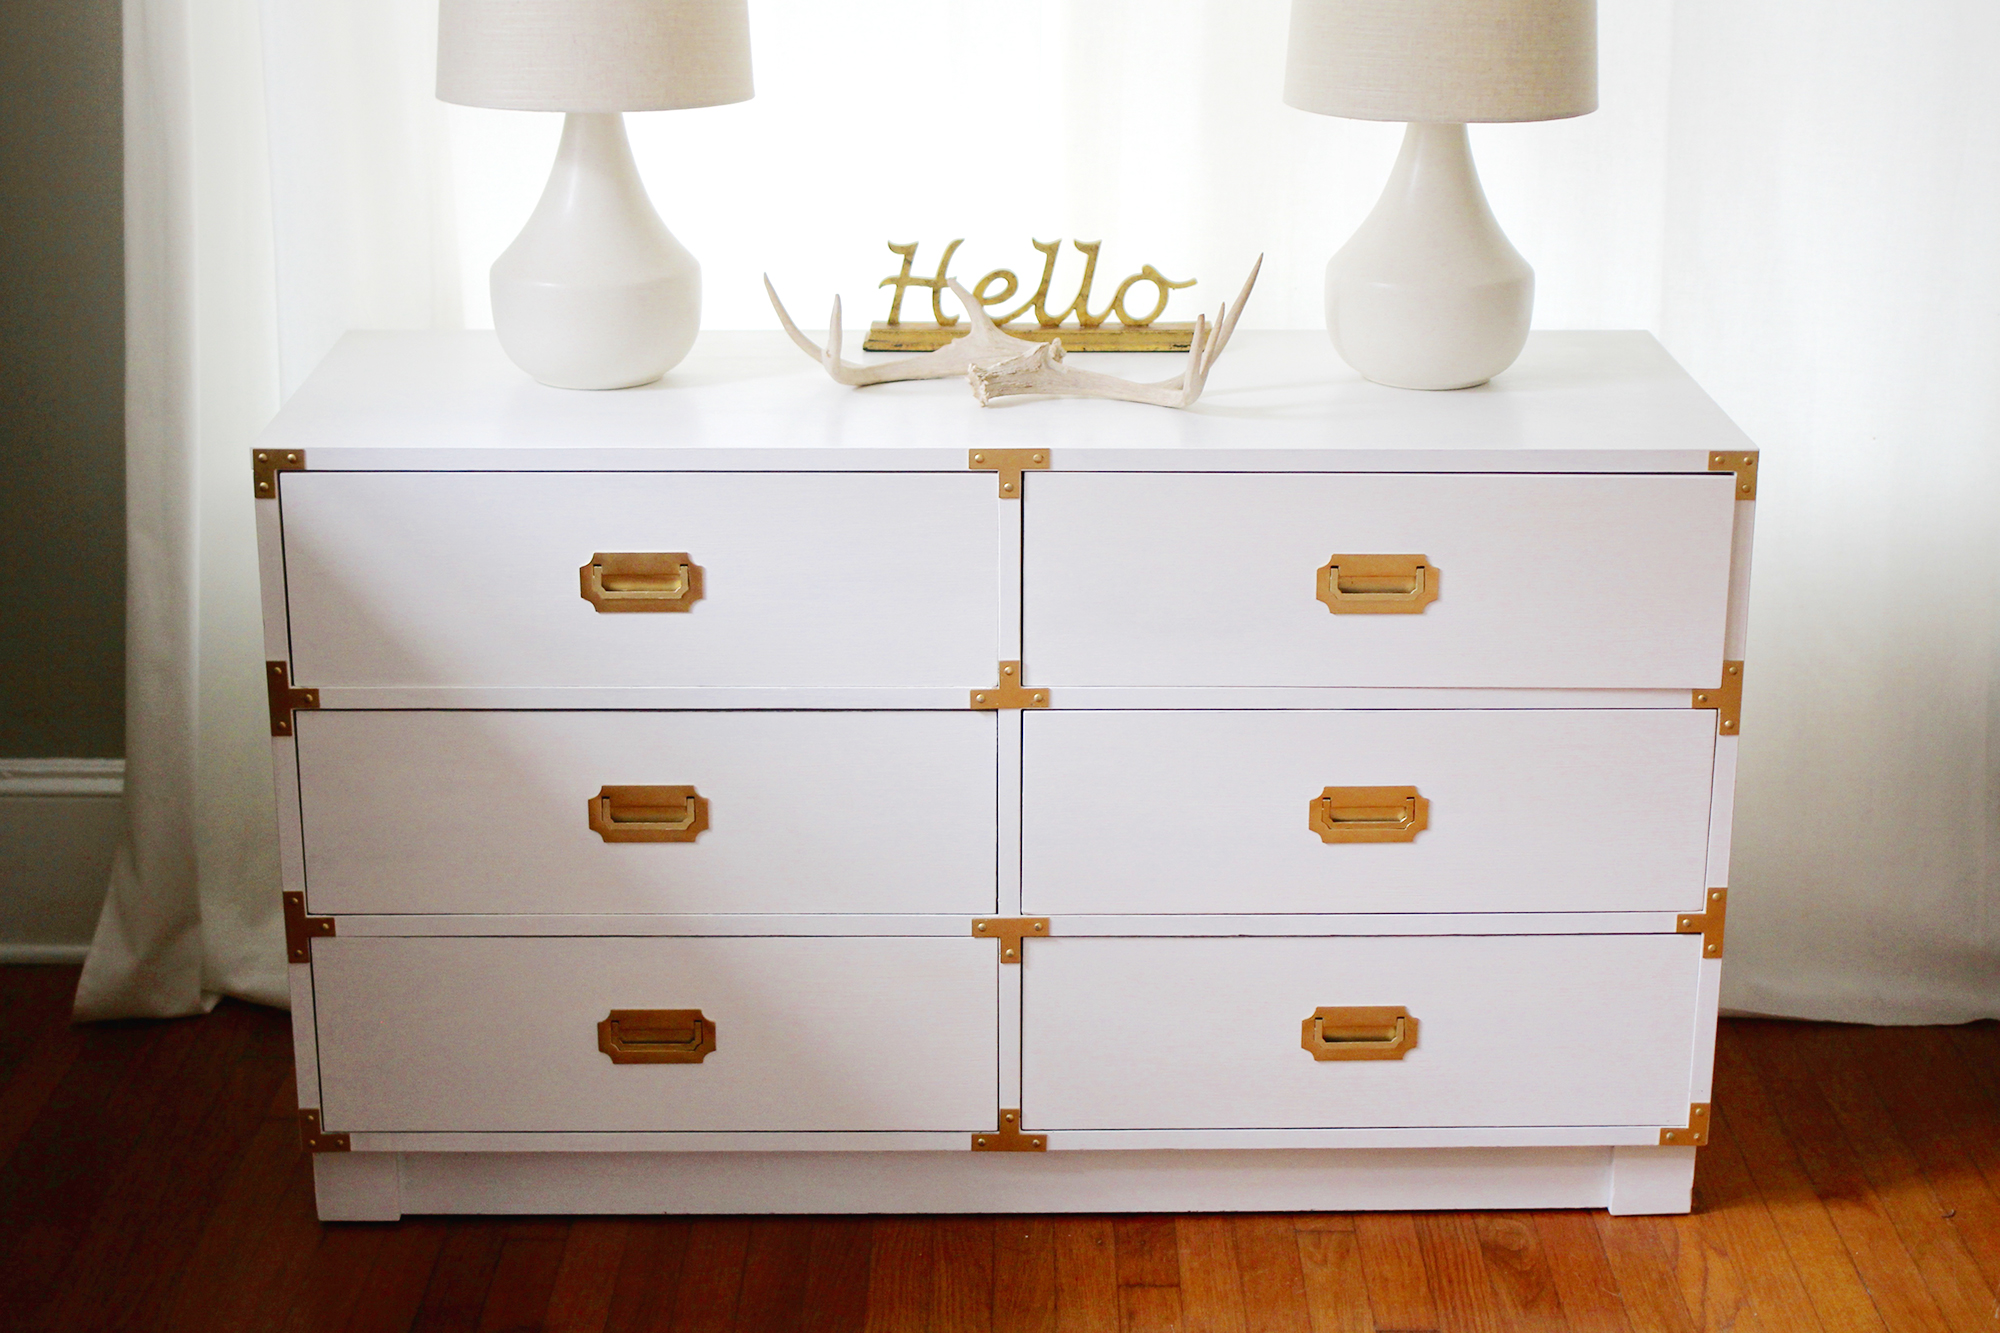 Restoring a Classic Campaign Dresser in White and Gold